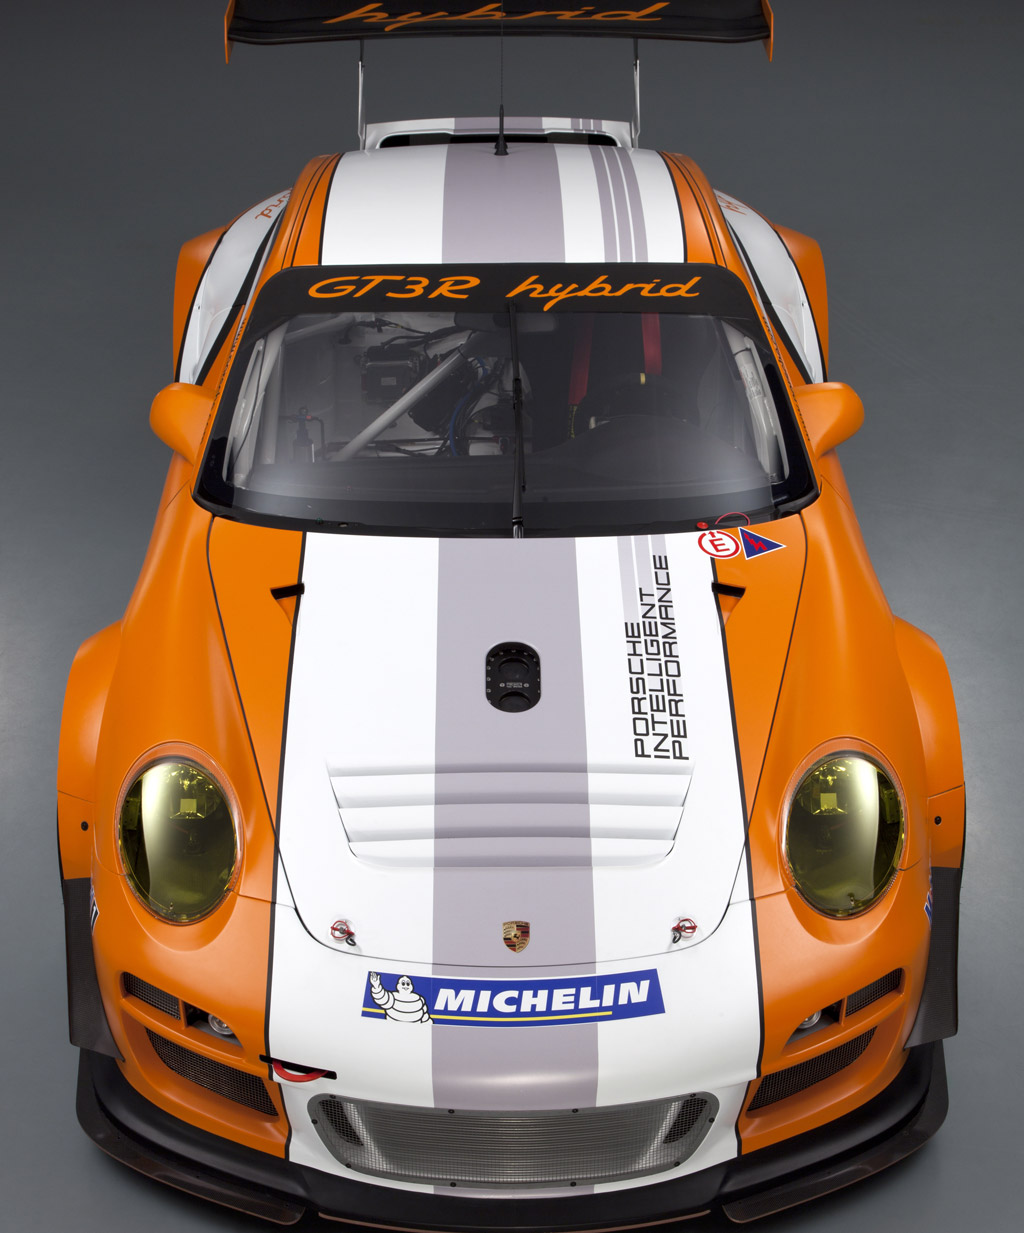 Porsche Launches Version 2.0 Of Amazing 911 GT3 R Hybrid Racer on 919 porsche hybrid race car, porsche factory race cars, porsche track car red, porsche 918 hybrid race car, falken porsche 911 race car, porsche gt3 race cars, porsche 911 vintage race car, porsche cayman car, chrysler patriot hybrid race car, 1969 porsche 912 race car, mclaren f1 race car, audi r8 race car, 1999 porsche 911 race car, 1986 porsche 944 race car, ford fusion hybrid race car, porsche gt3 cup car, camaro gt3 race car, porsche 993 race car,